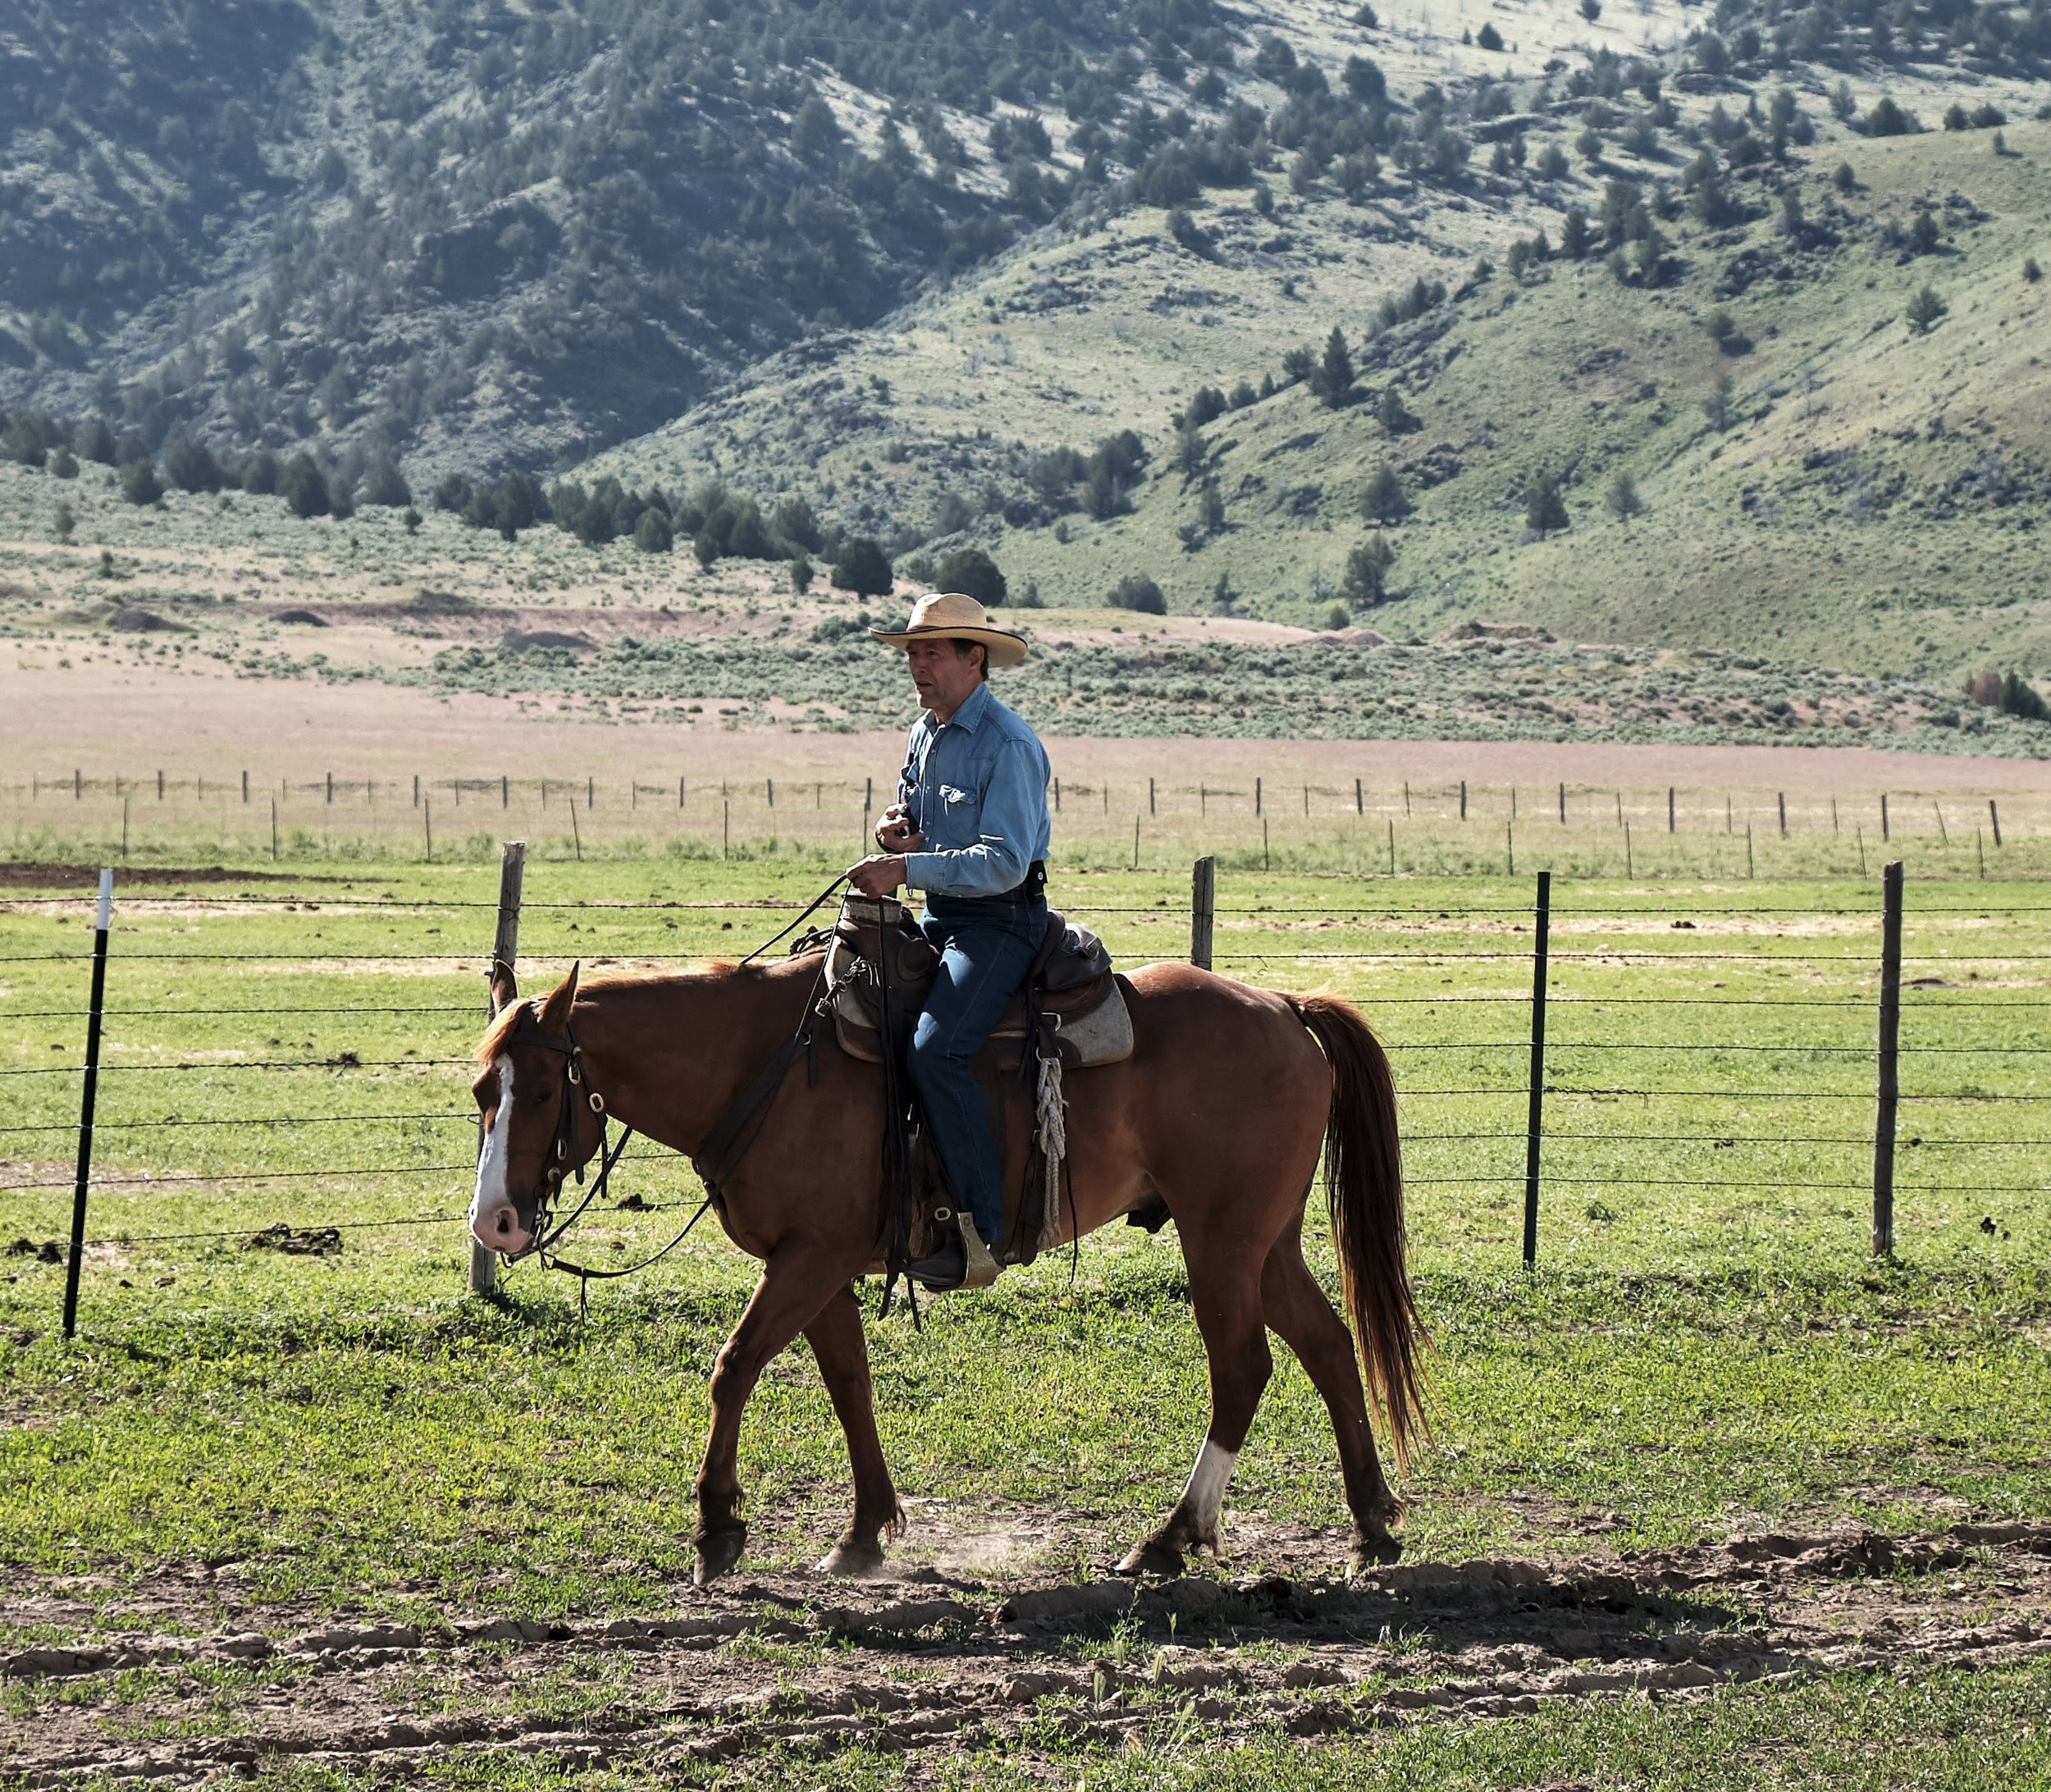 "Whit Hibbard is a rancher and editor of the Stockmanship Journal and he shared this driving analogy as part of the LSLH training held at Roaring Springs Ranch, June 10-14th, 2019. He and Steve Cote, author of the ""Manual of Stockmanship,"" were teaching the principles and techniques of LSLH as developed by the legendary stockman, Bud Williams, to train more manageable cattle that can be used as an effective tool in rangeland management."